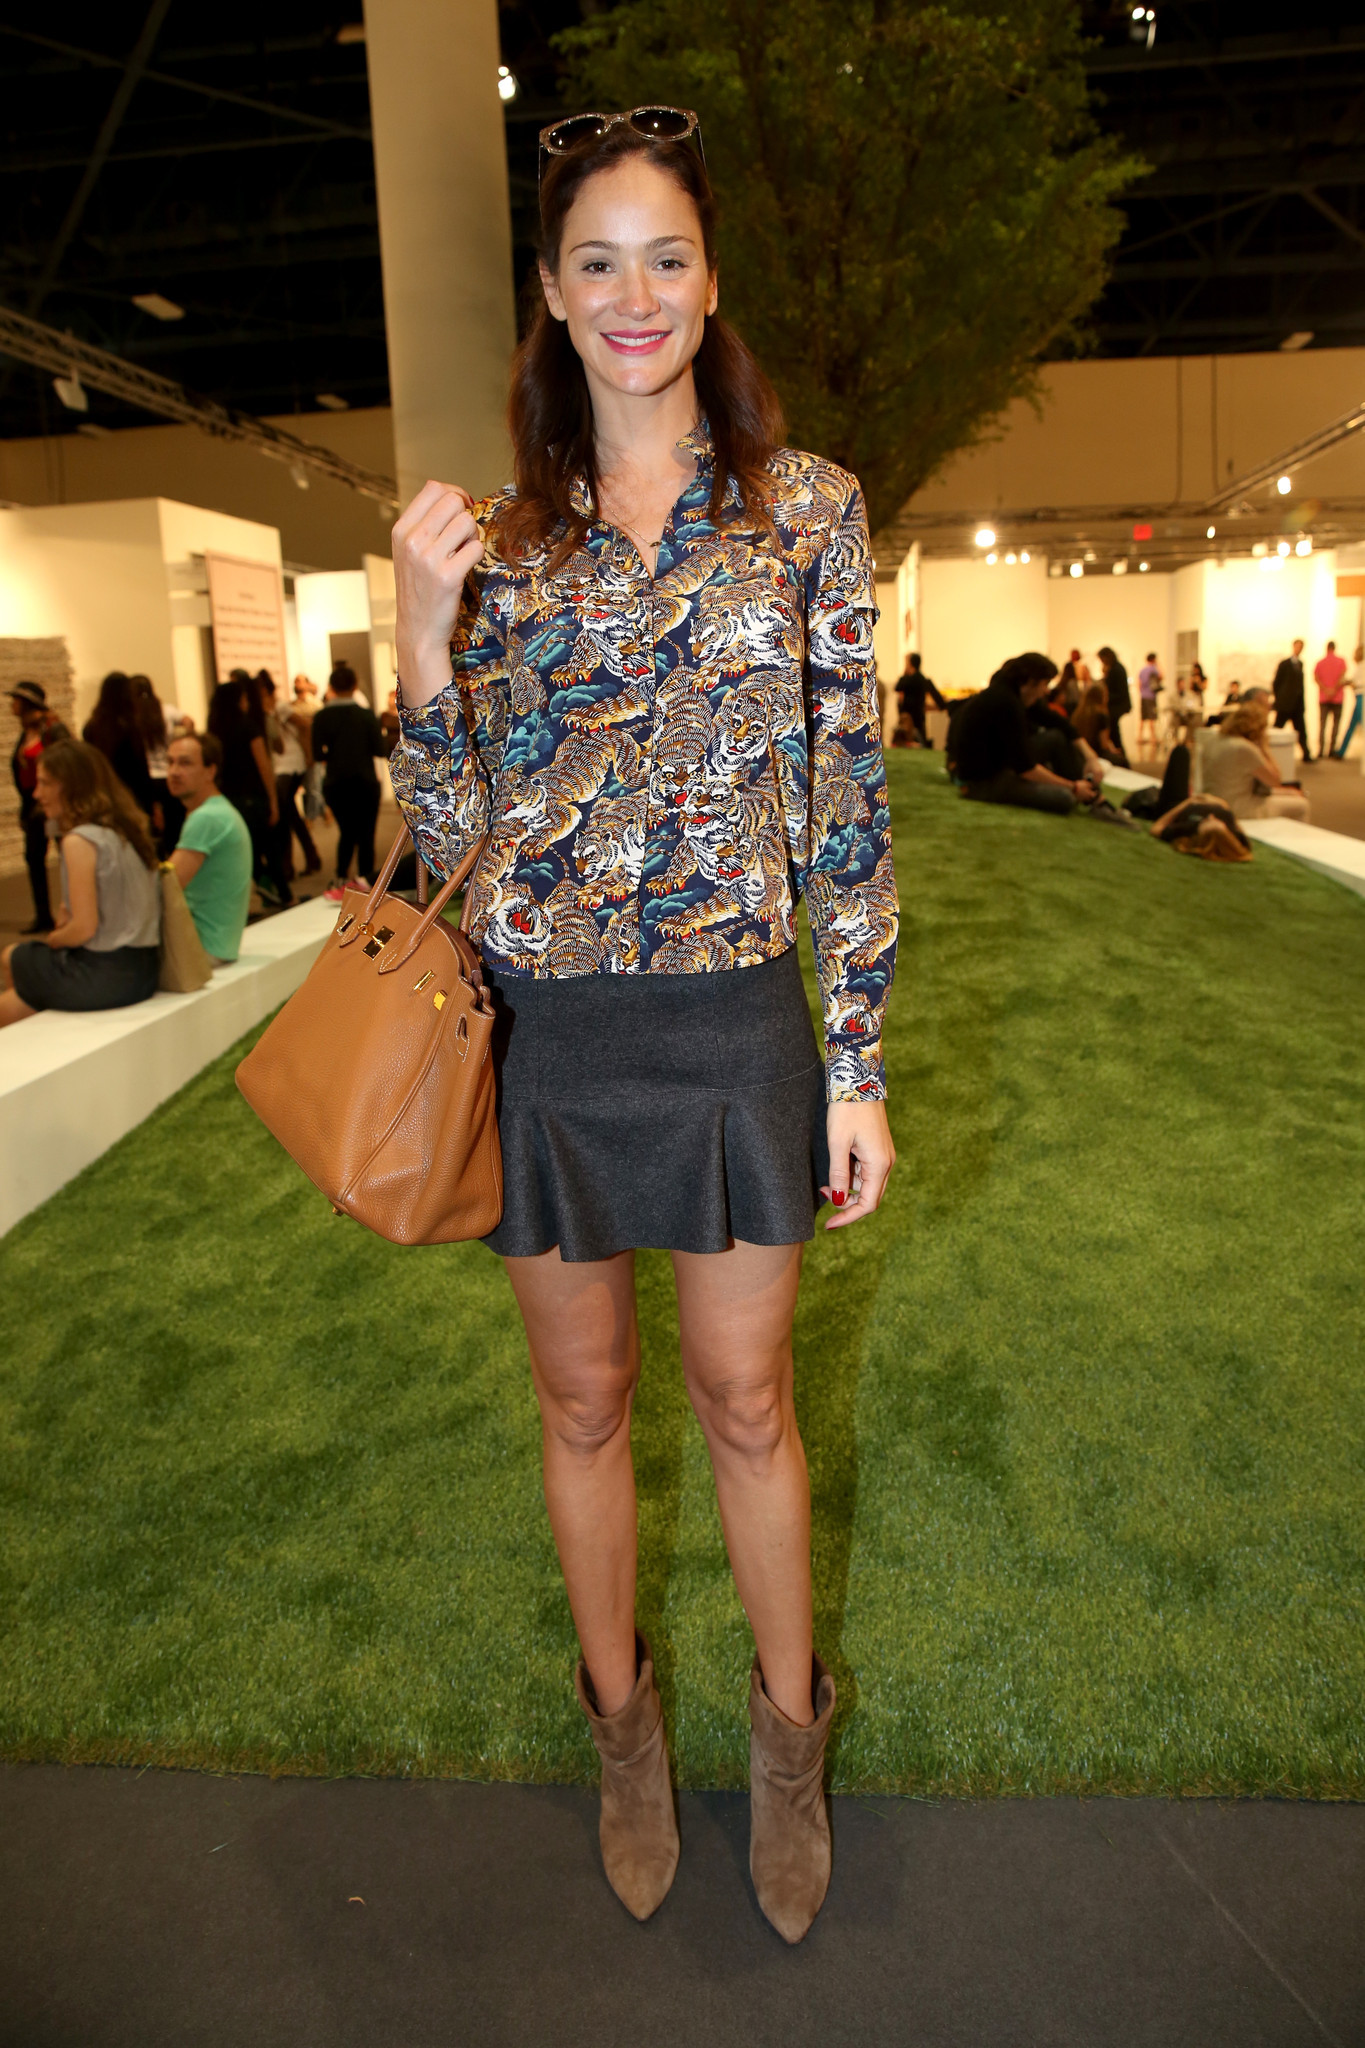 PHOTOS: The fashionistas of Art Basel - Art Basel Miami Beach 2013 - Street Style - Day 2